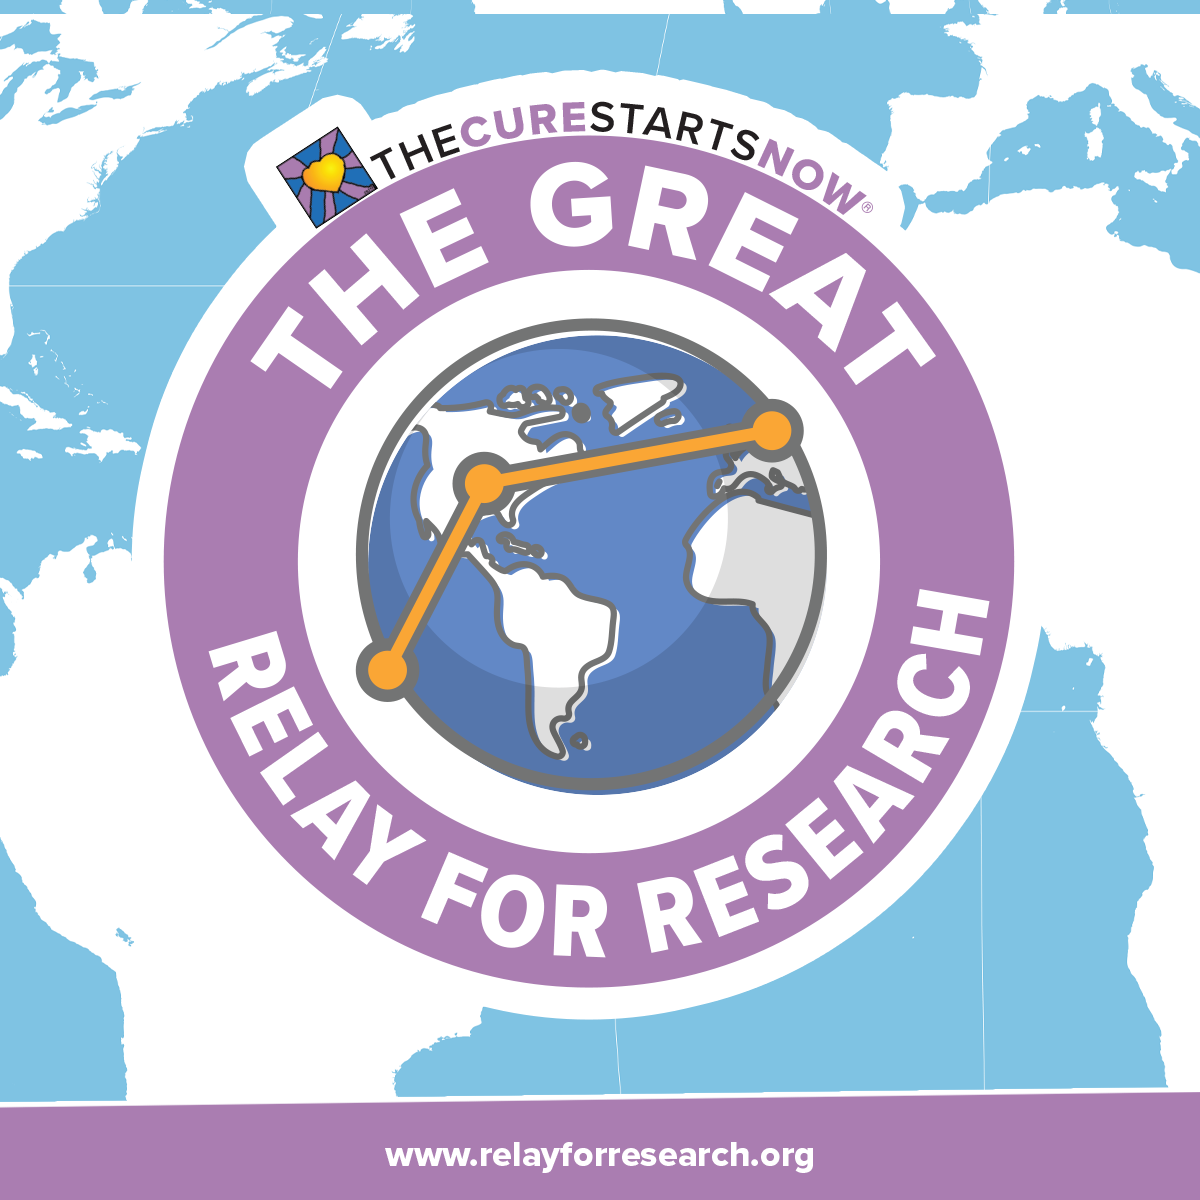 The Great Relay for Research